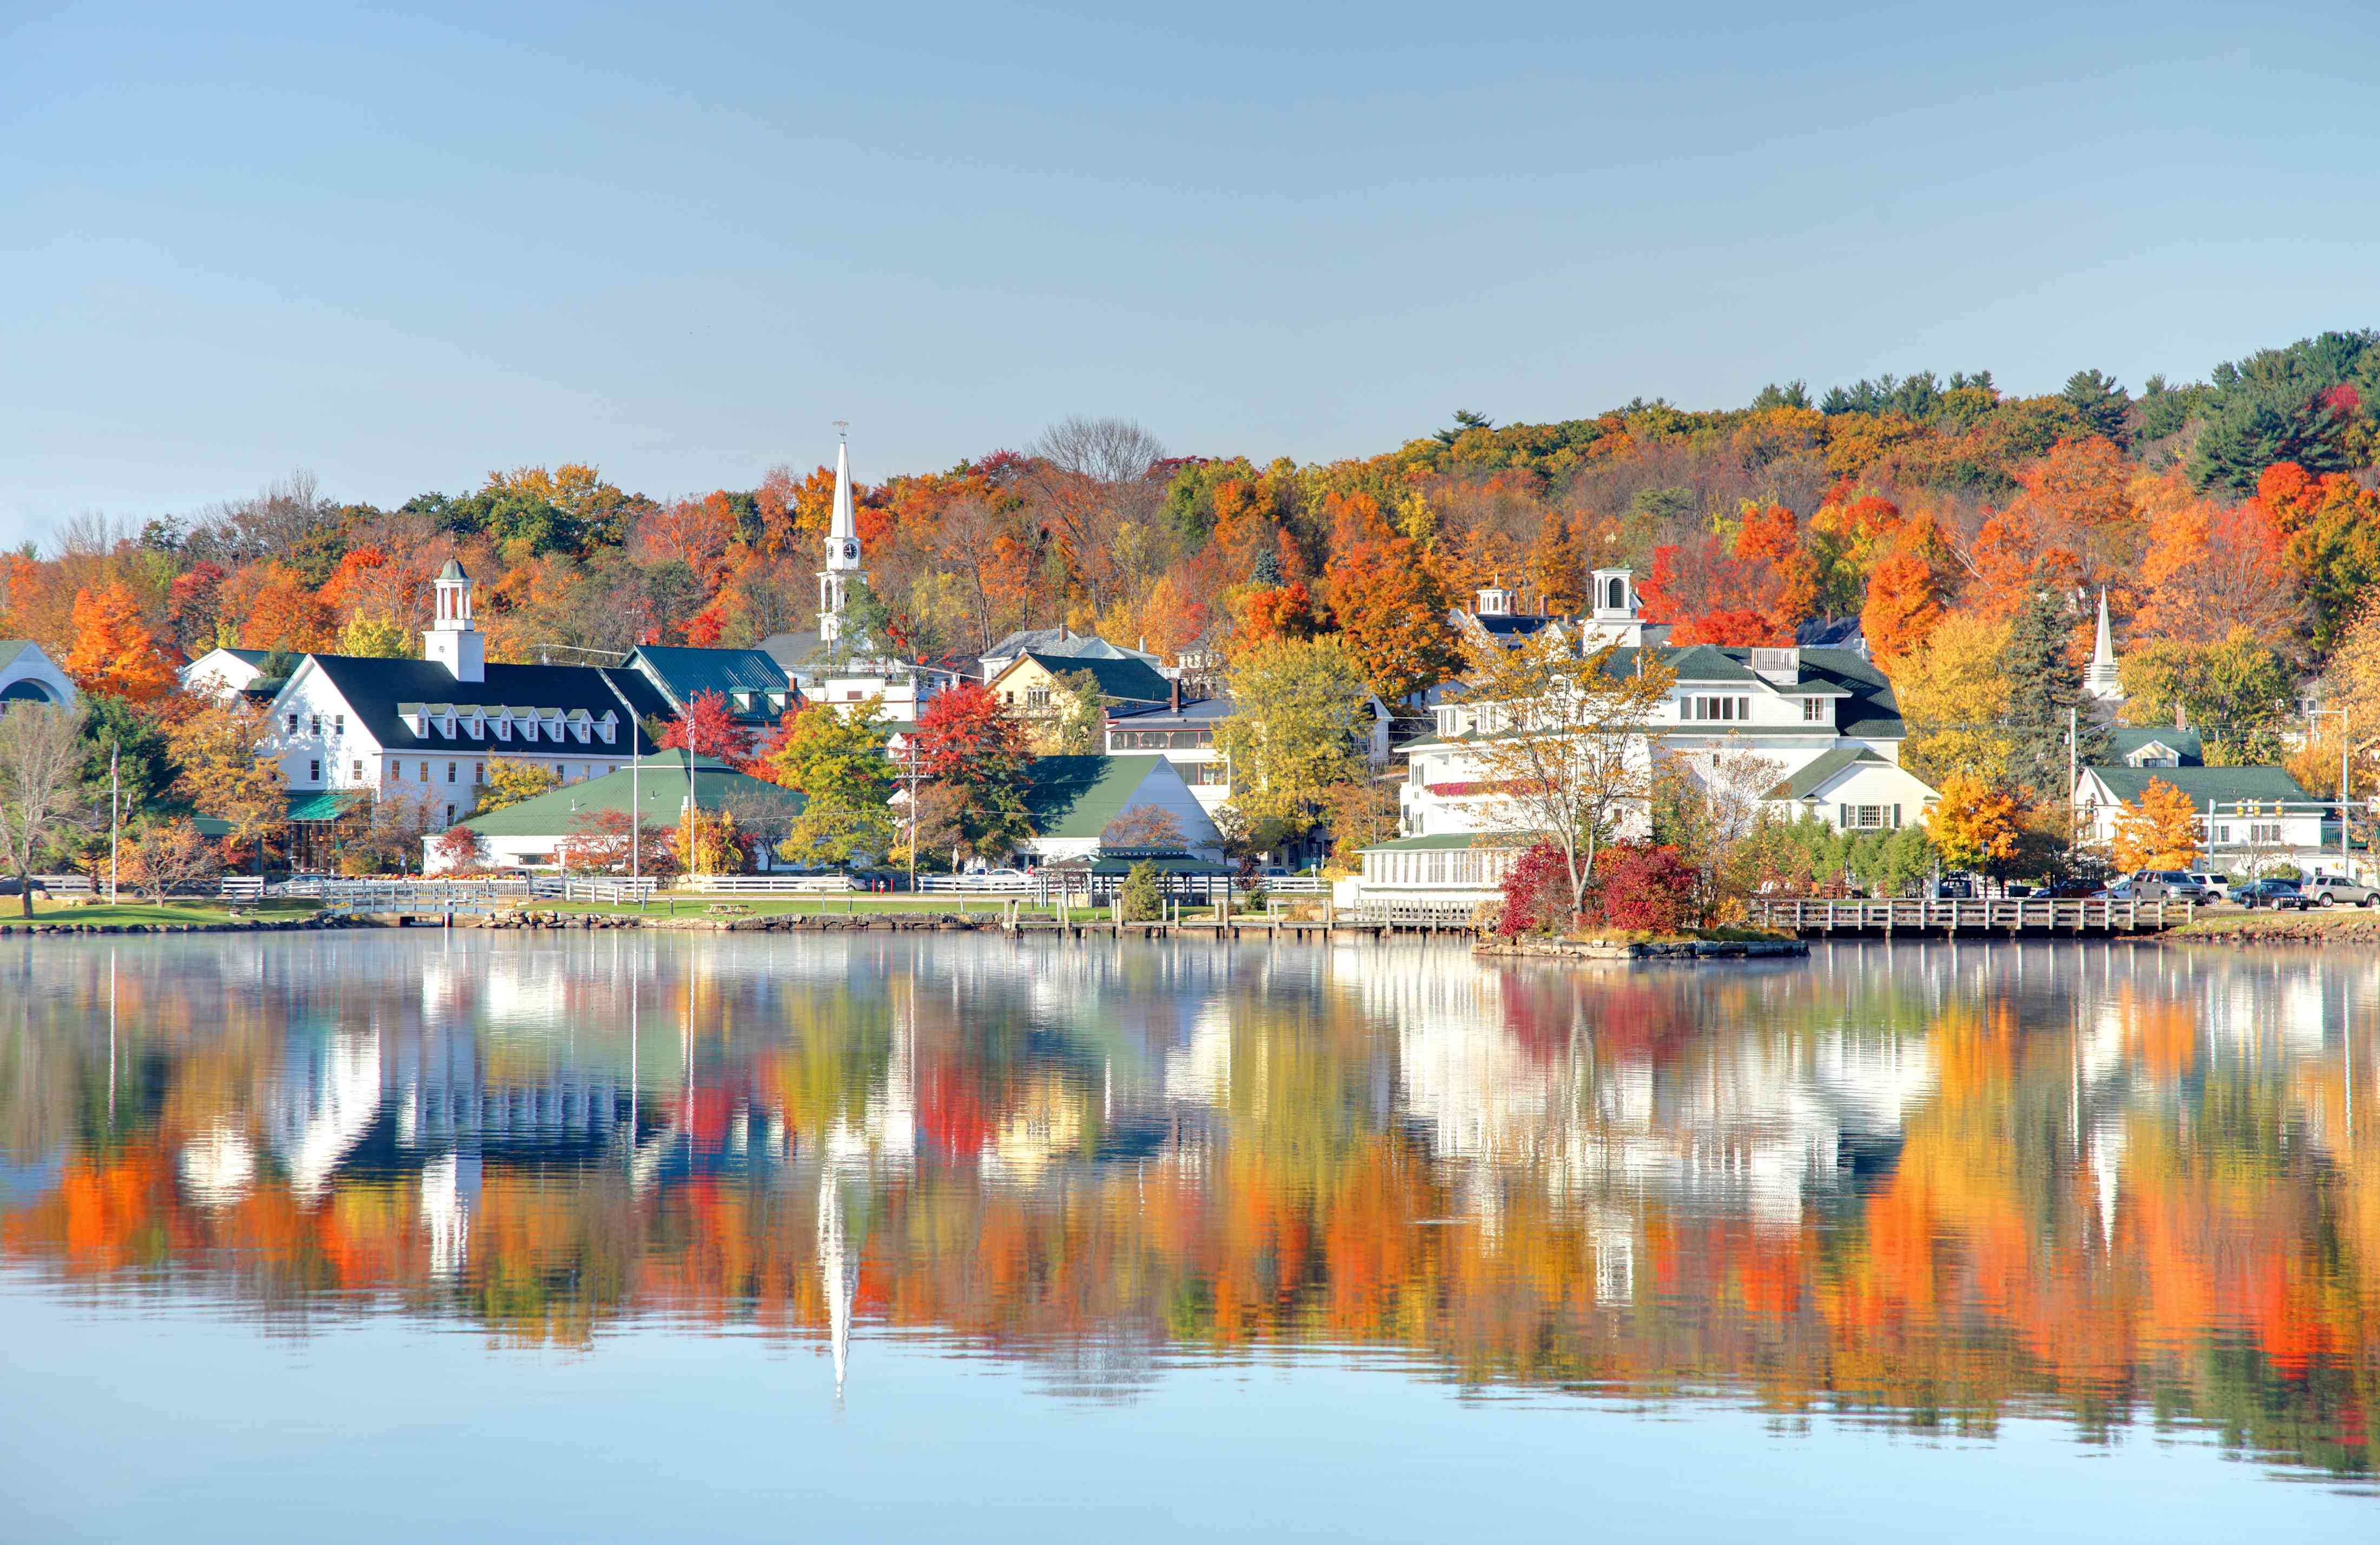 Autumn foliage and houses reflection along the shores of Lake Winnipesaukee in Meredith, New Hampshire